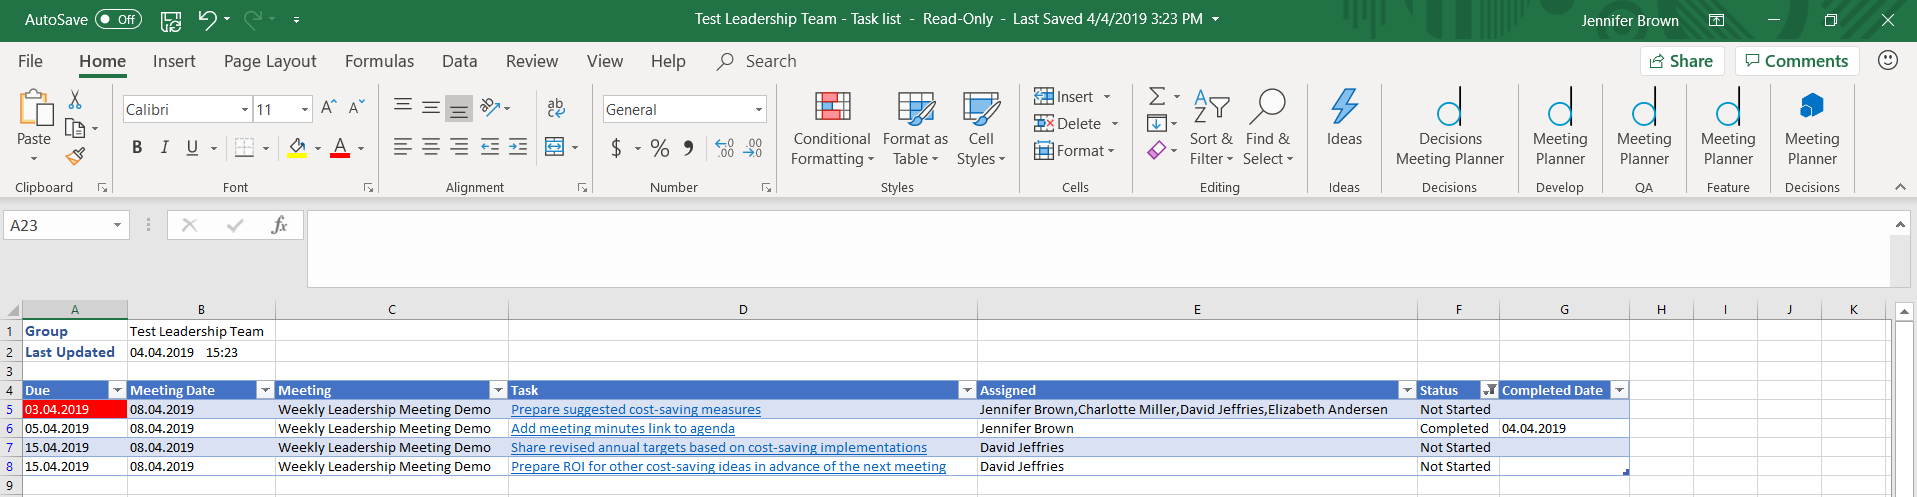 excel screen